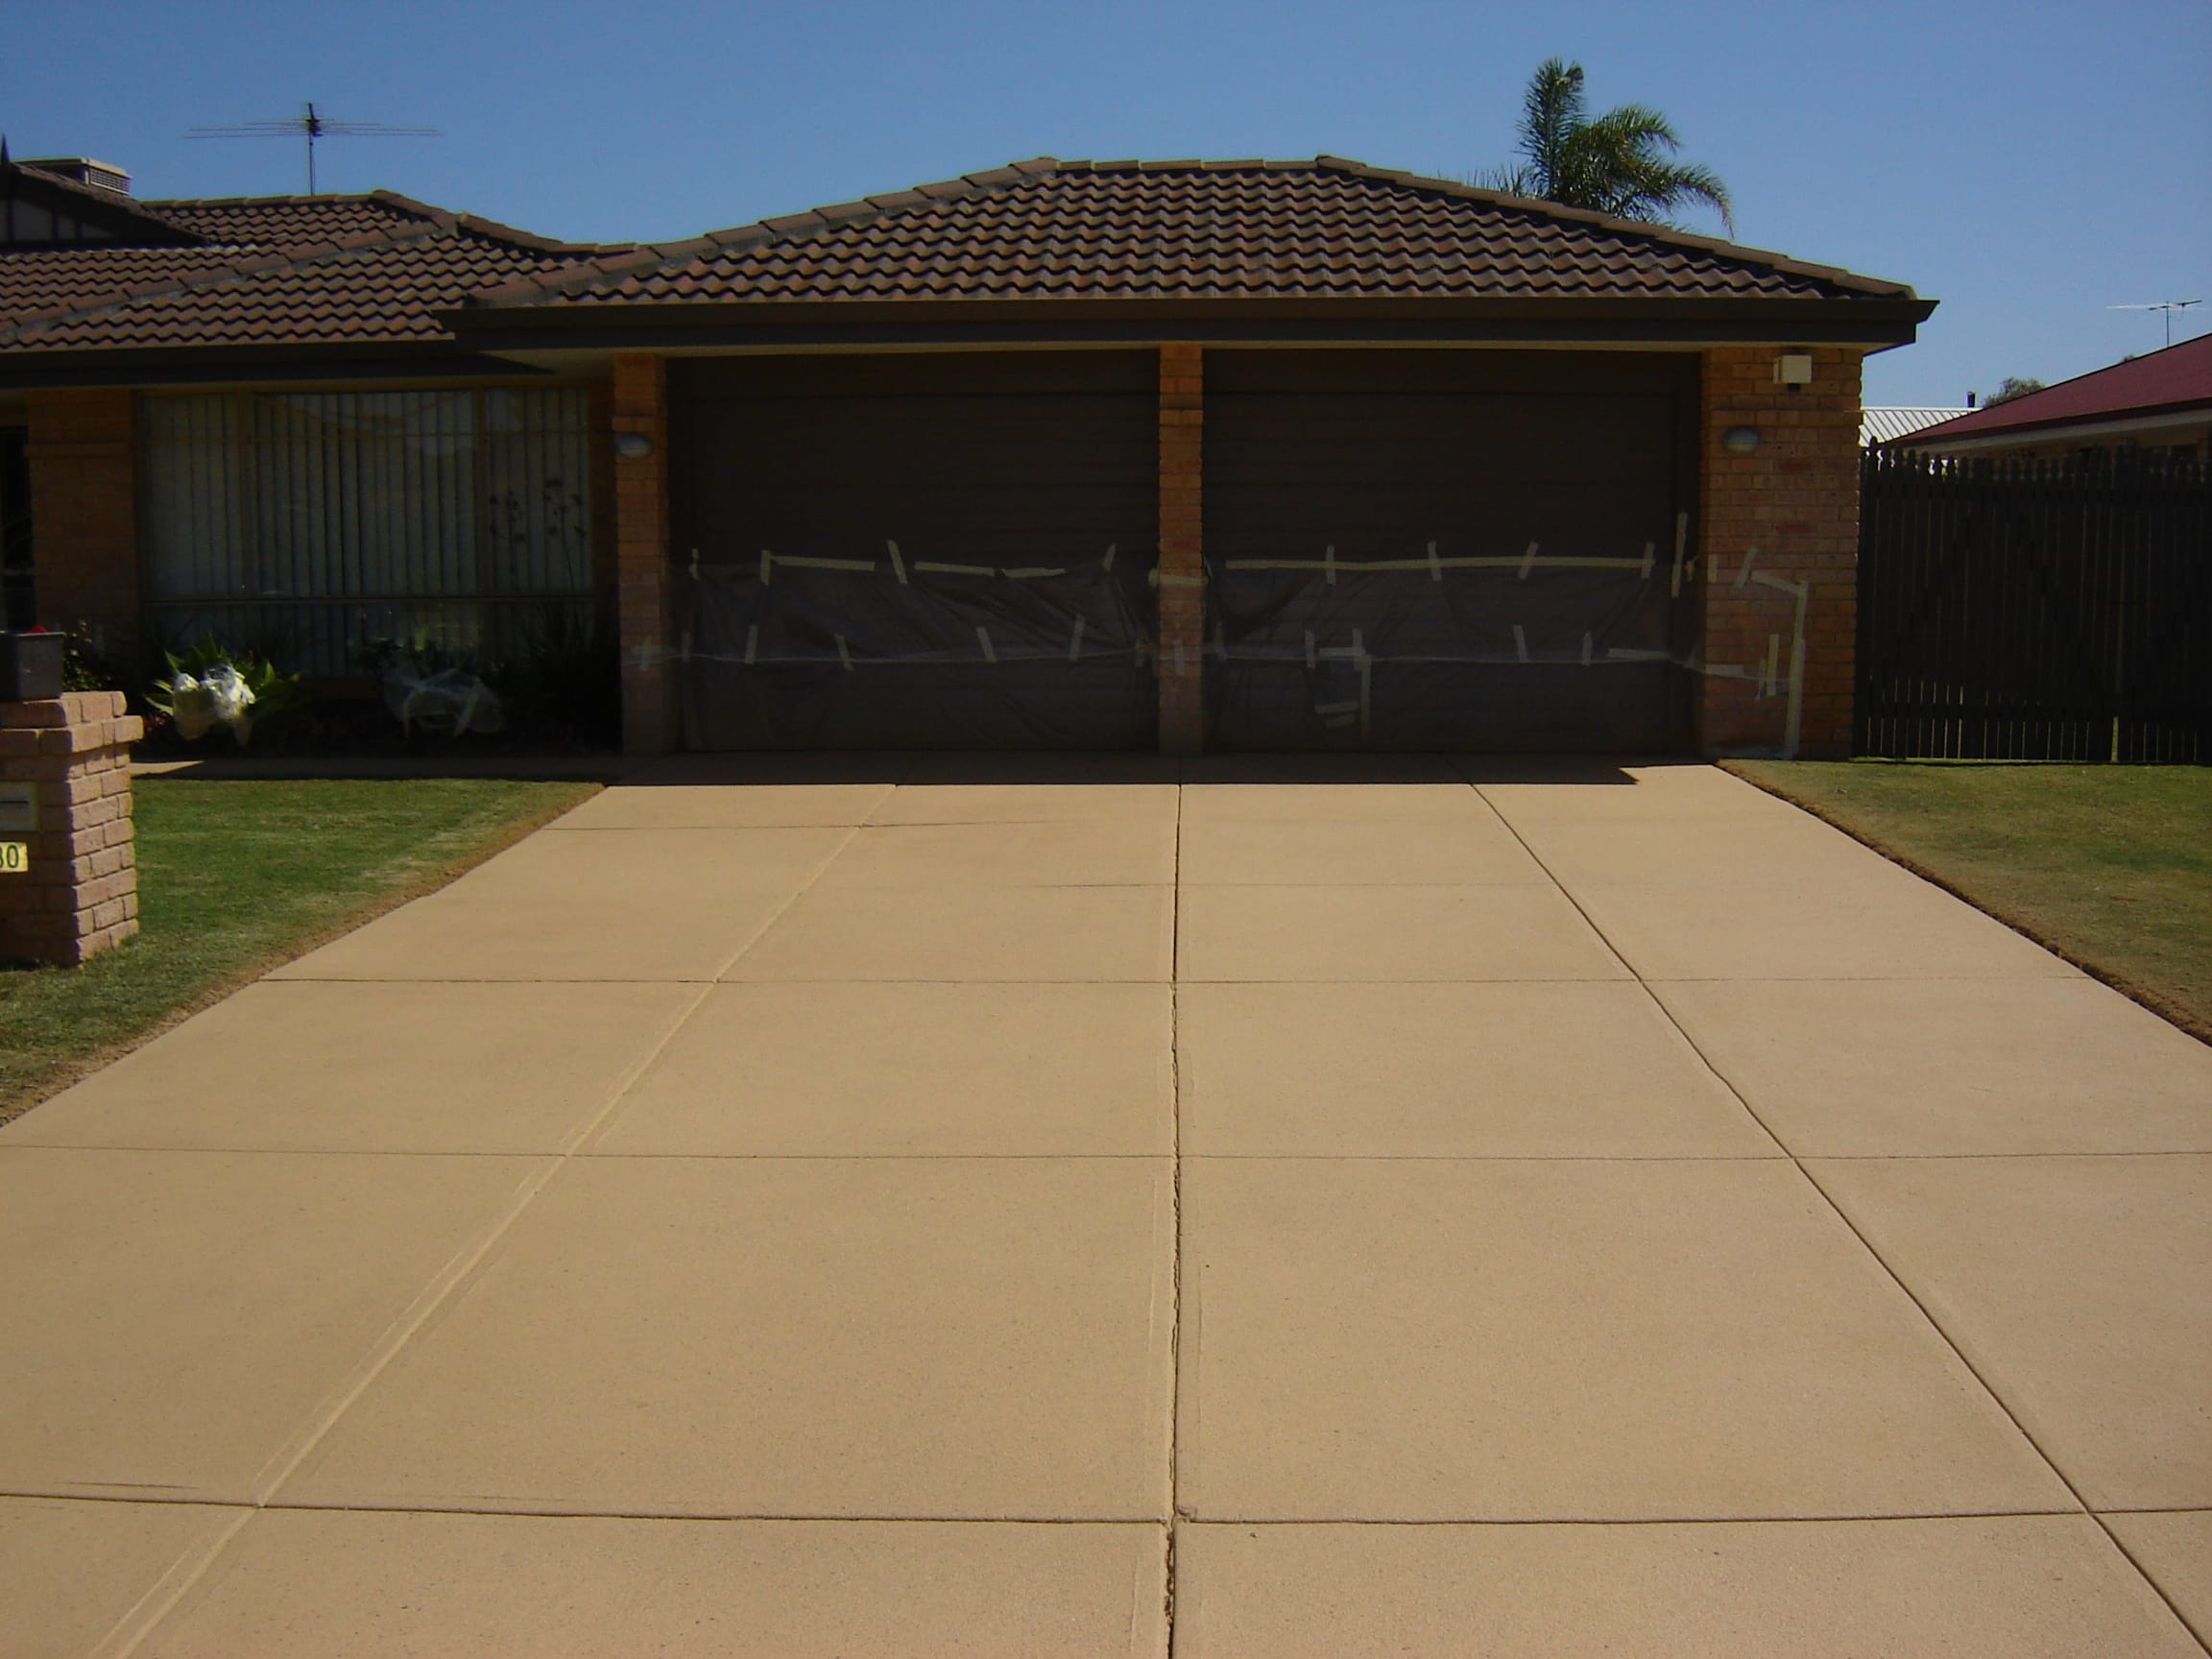 Driveway after complete resurfacing solutions for Best solution to clean concrete driveway